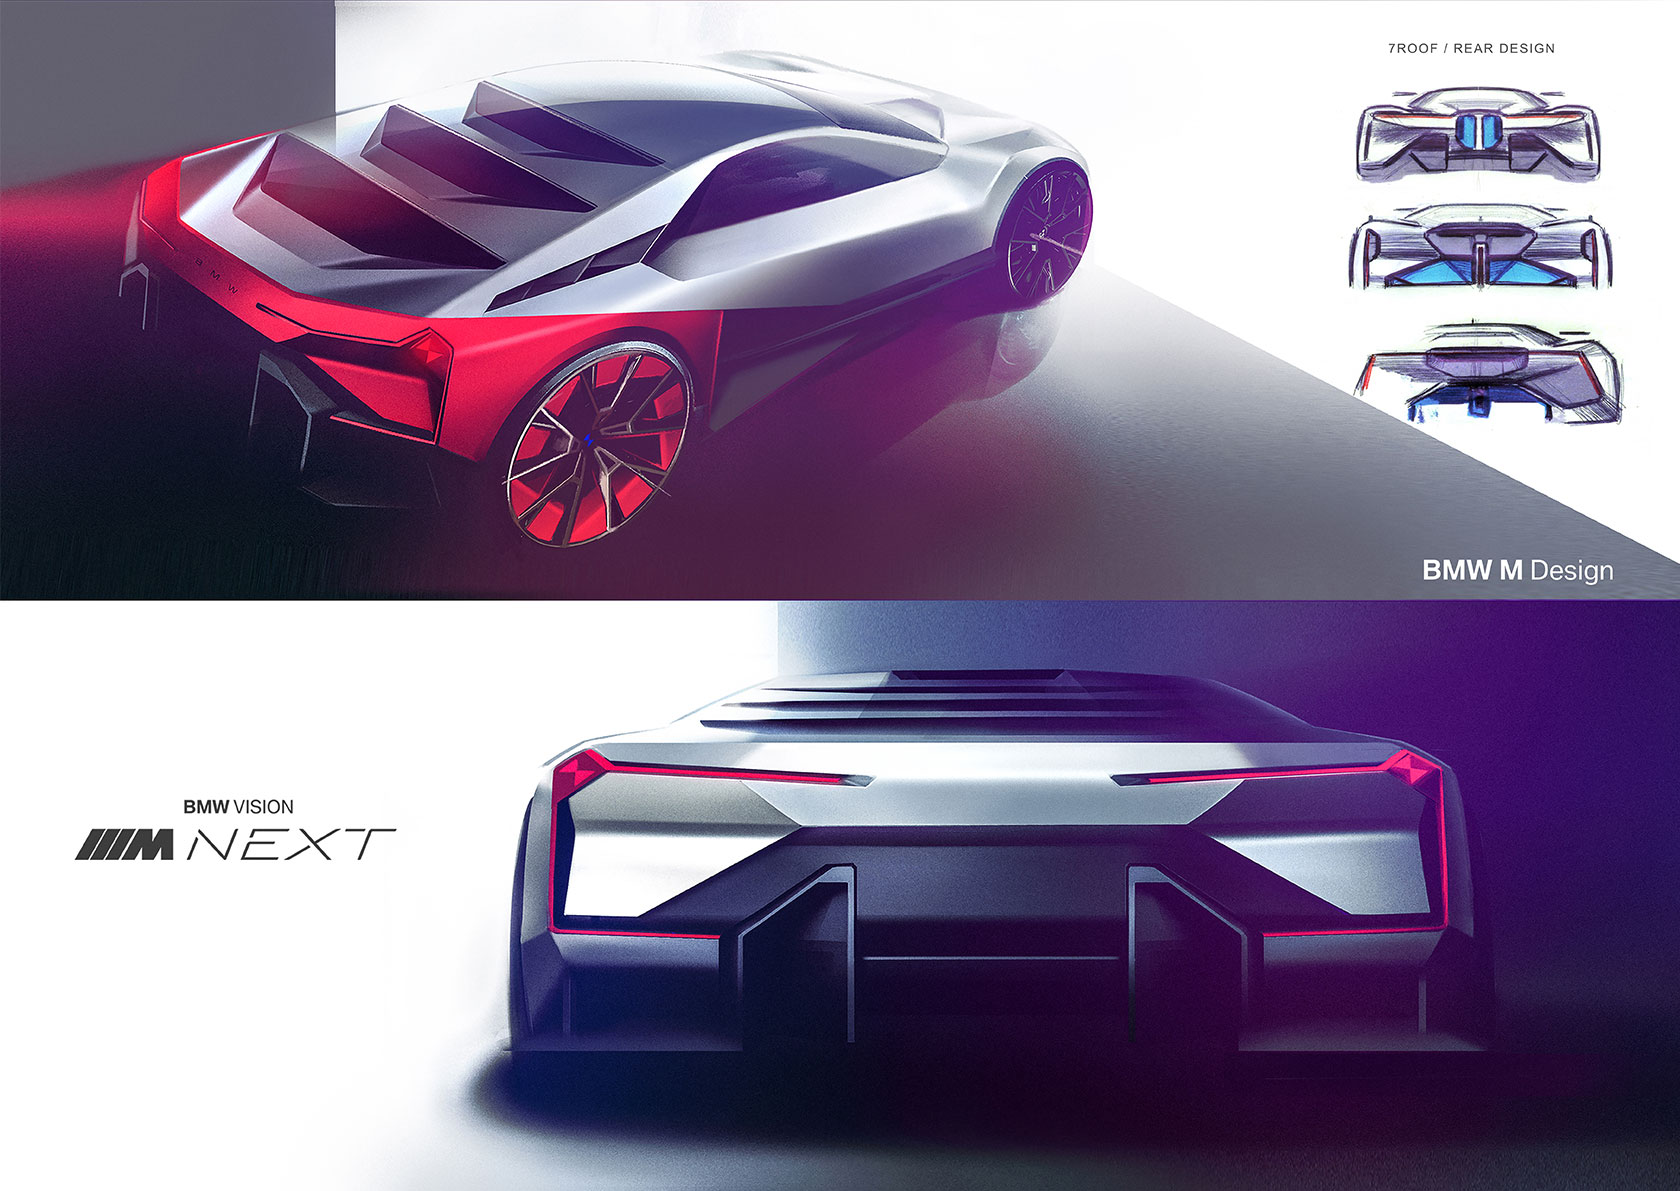 The Design Of The Bmw Vision M Next